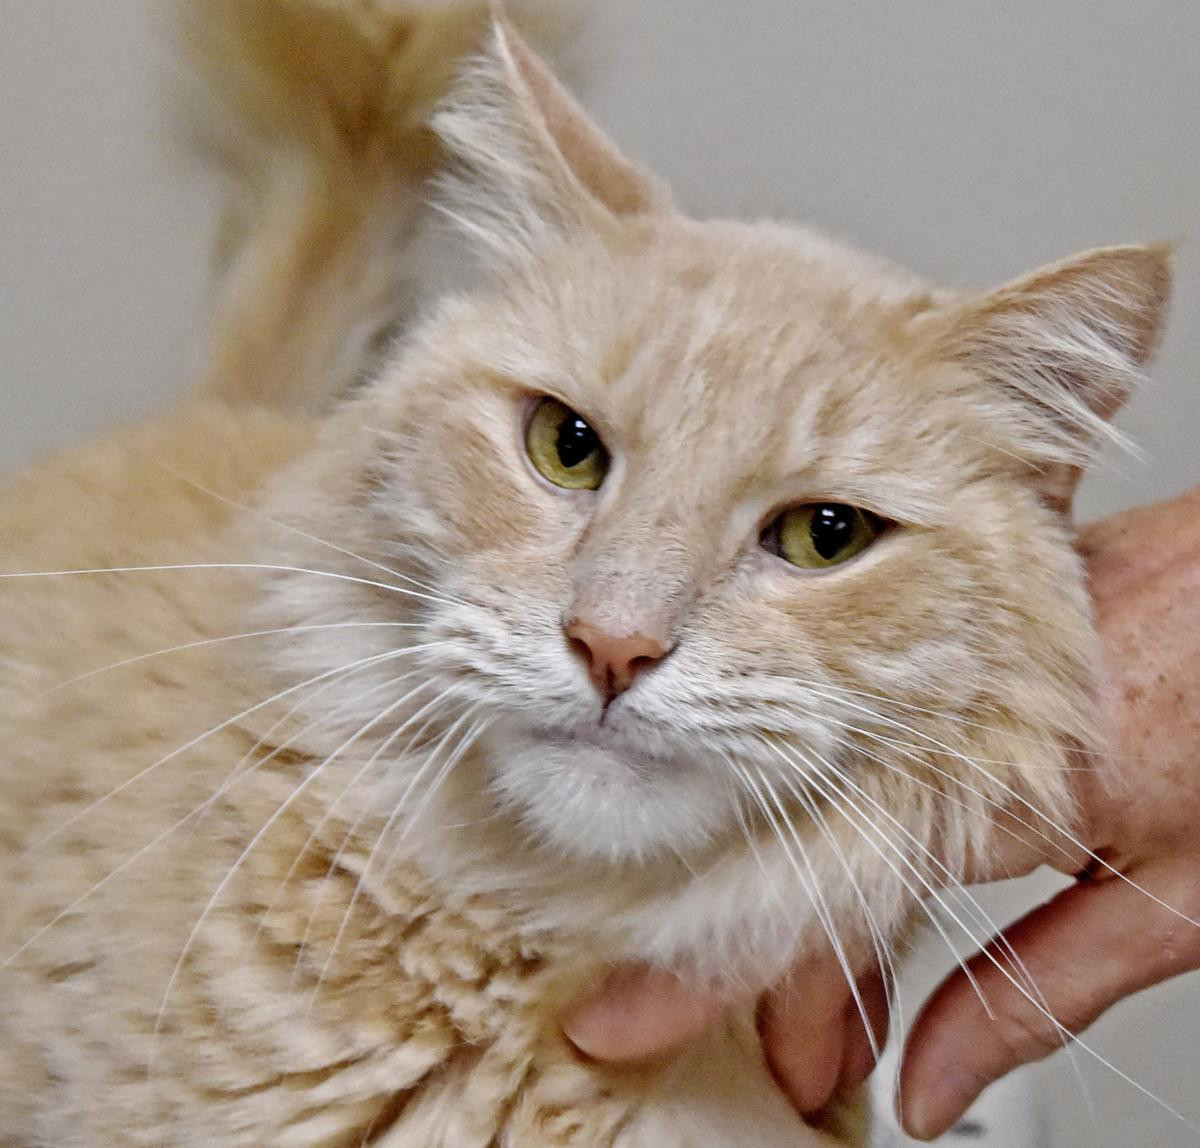 Best ideas about Pet Pantry Lancaster . Save or Pin Pet of the week Adopt Haystack a 2 year old domestic Now.